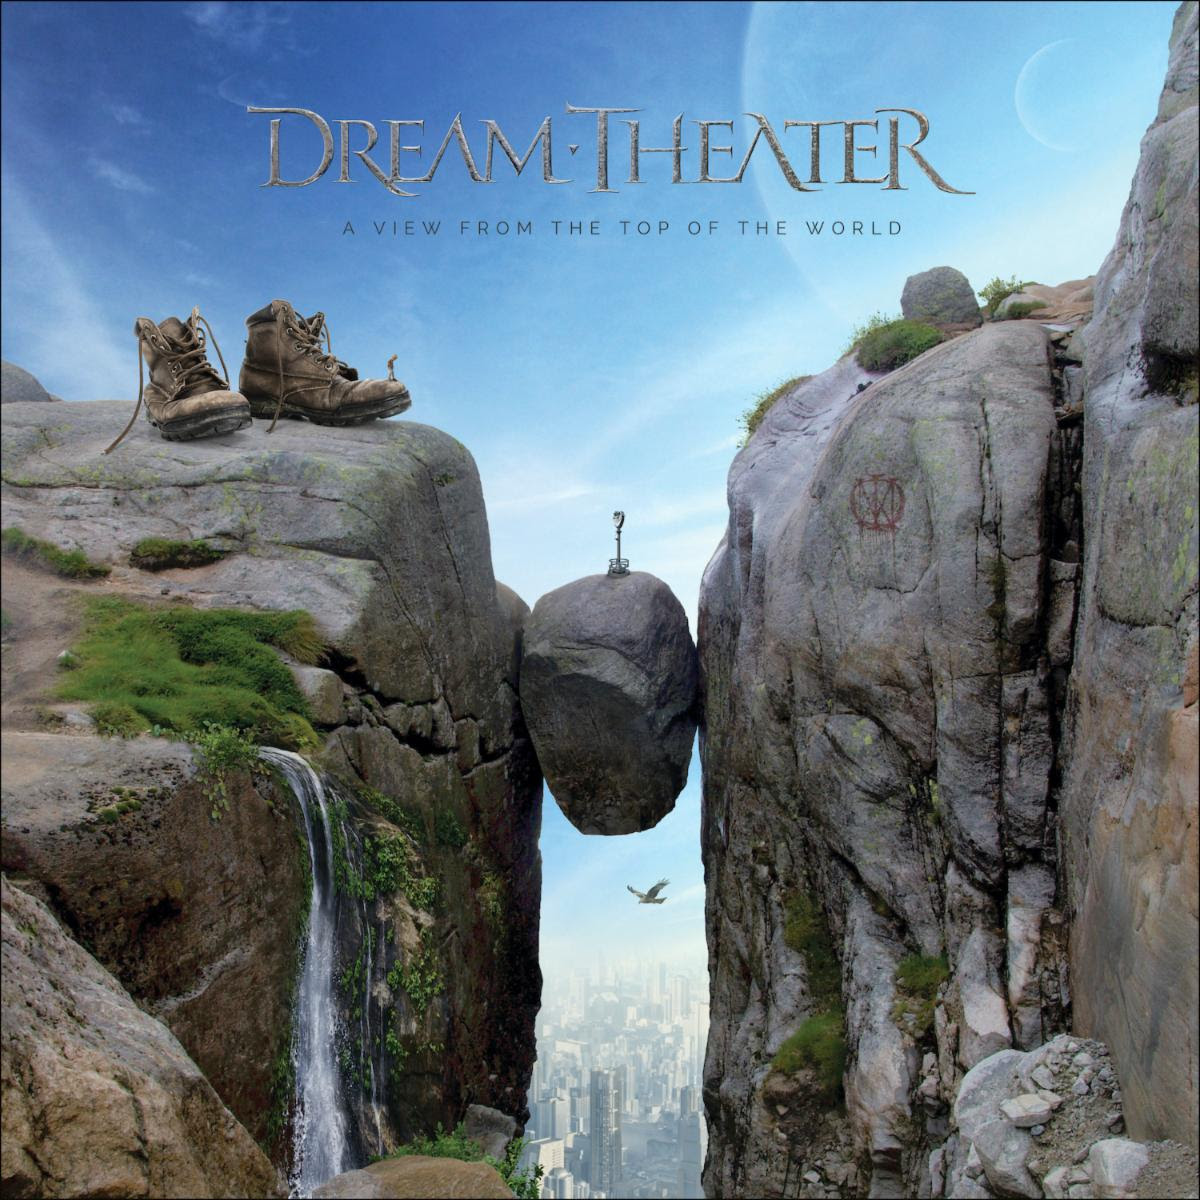 Dream Theater To Release 15th Studio Album 'A View From The Top Of The World'